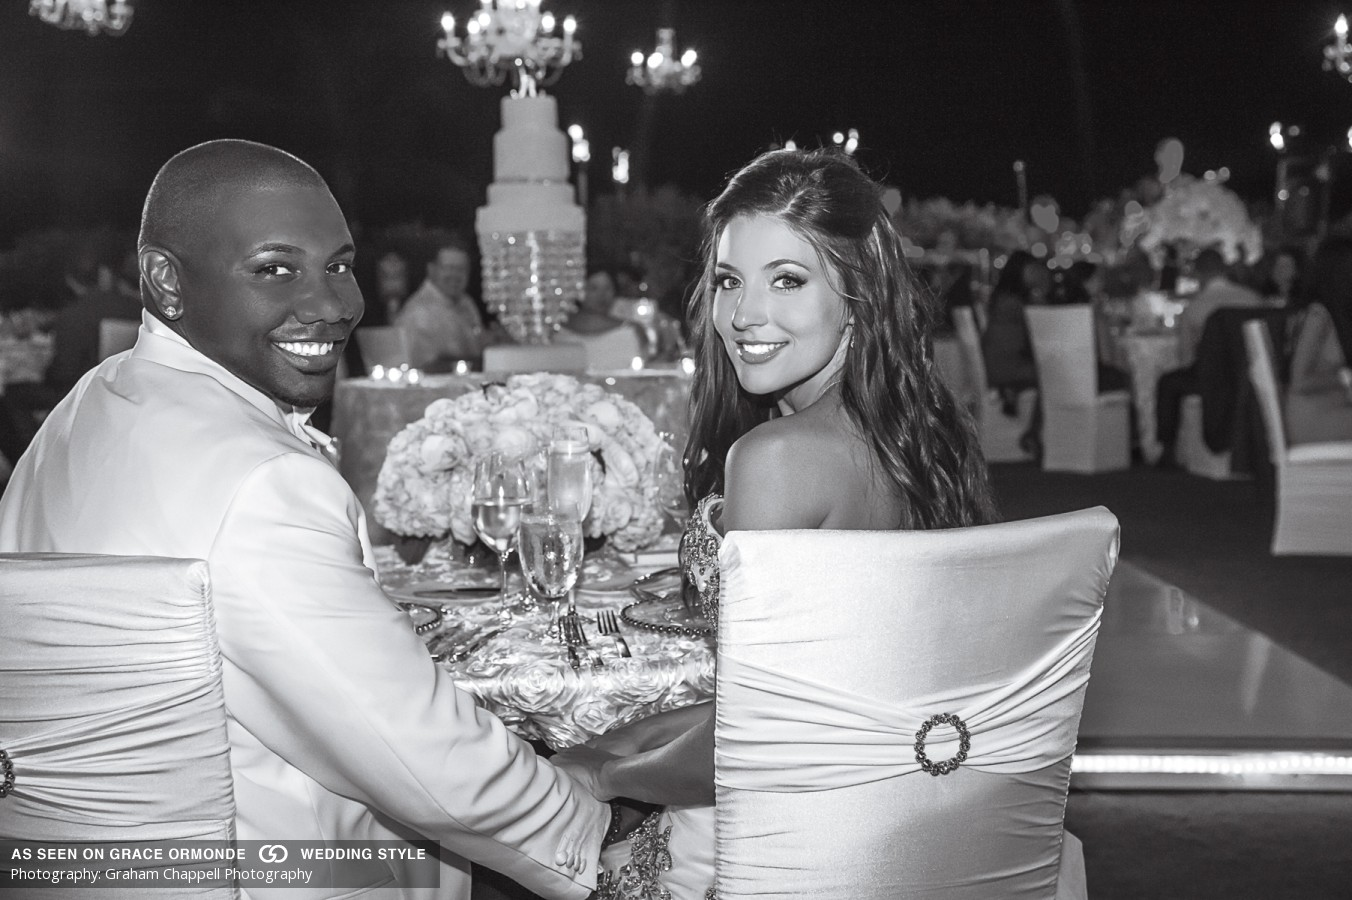 Grace Ormonde Wedding Style Magazine - Ryan Howard, first baseman Philadelphia Phillies and former Philadelphia Eagles Cheerleader, Krystle Campbell